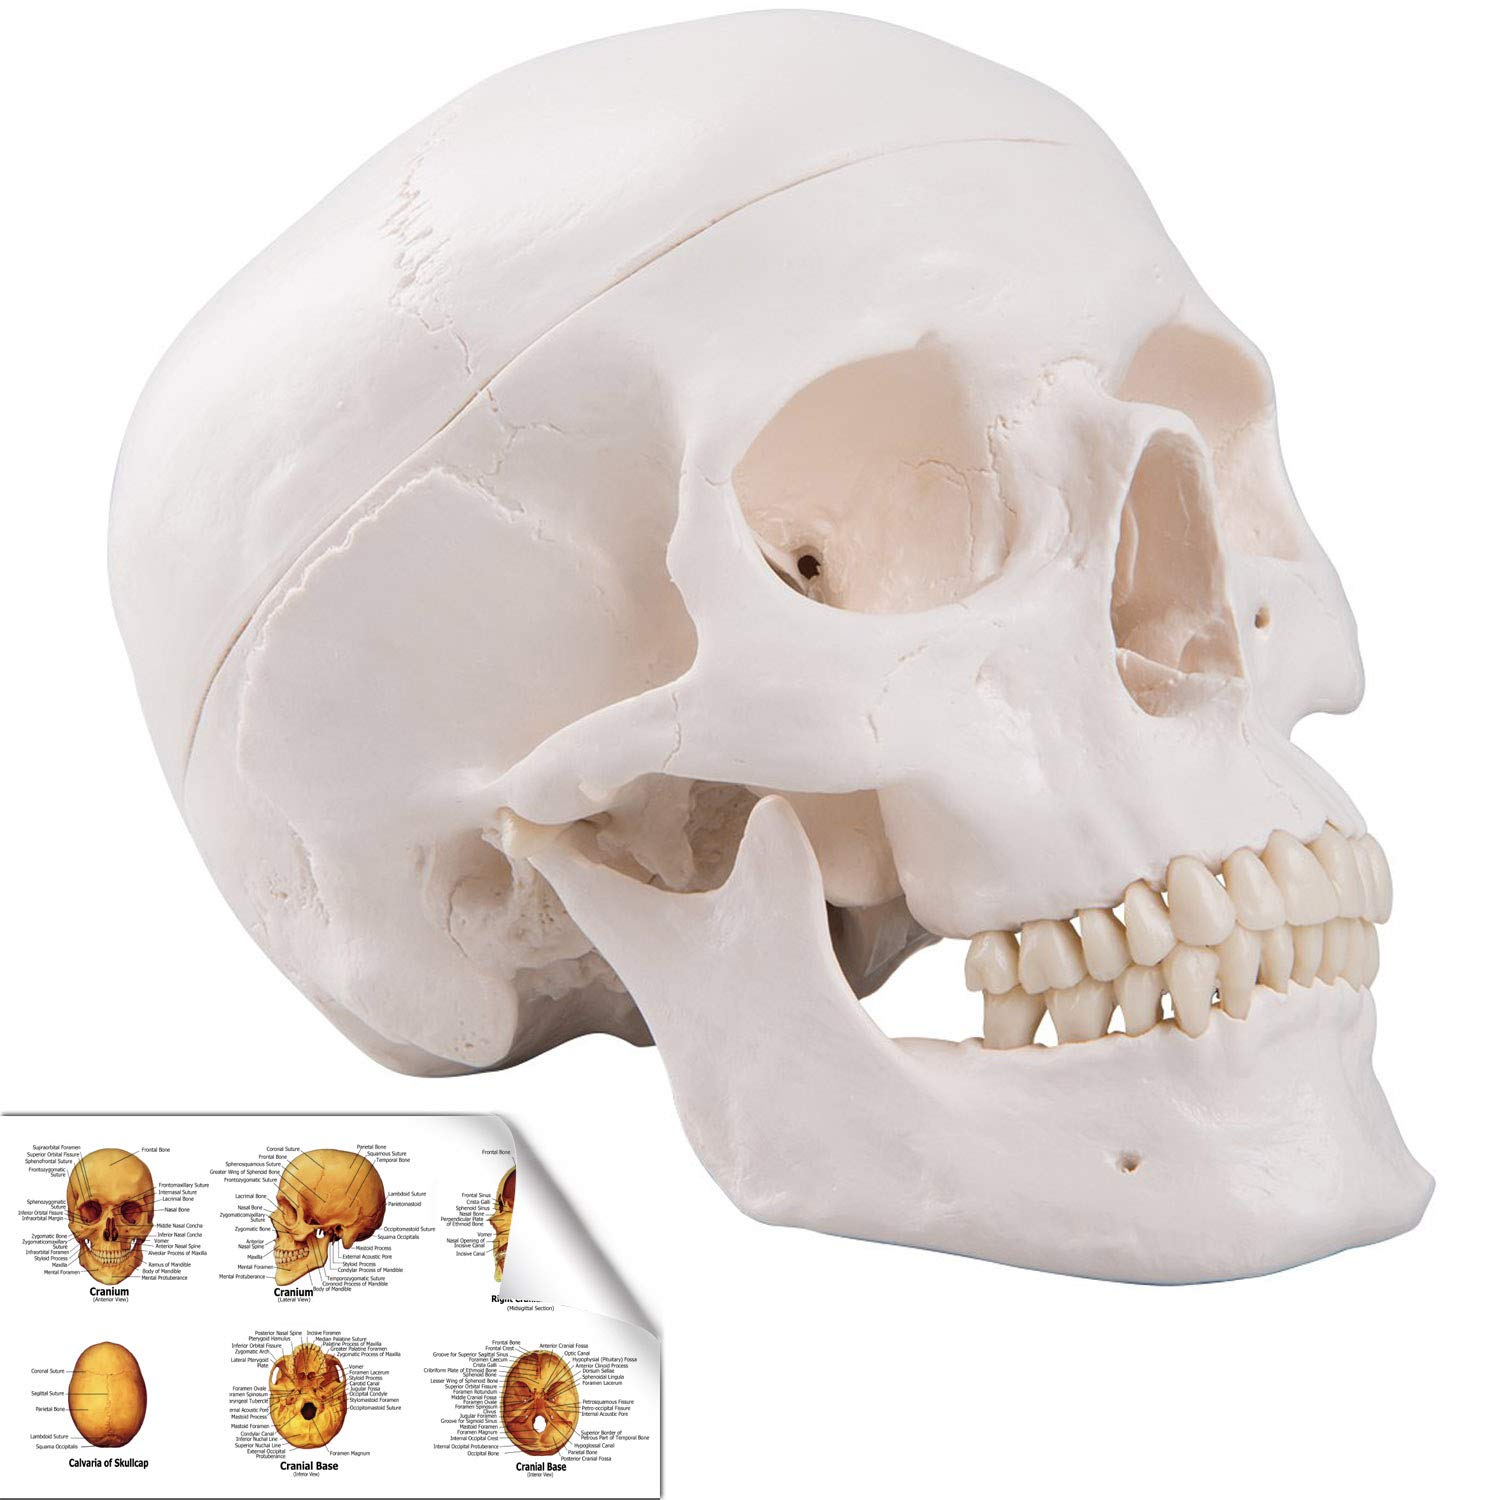 Life Size Replica Medical Anatomy Anatomical Adult Model with Removable Skull Cap and Articulated Mandible,Full Set of Teeth